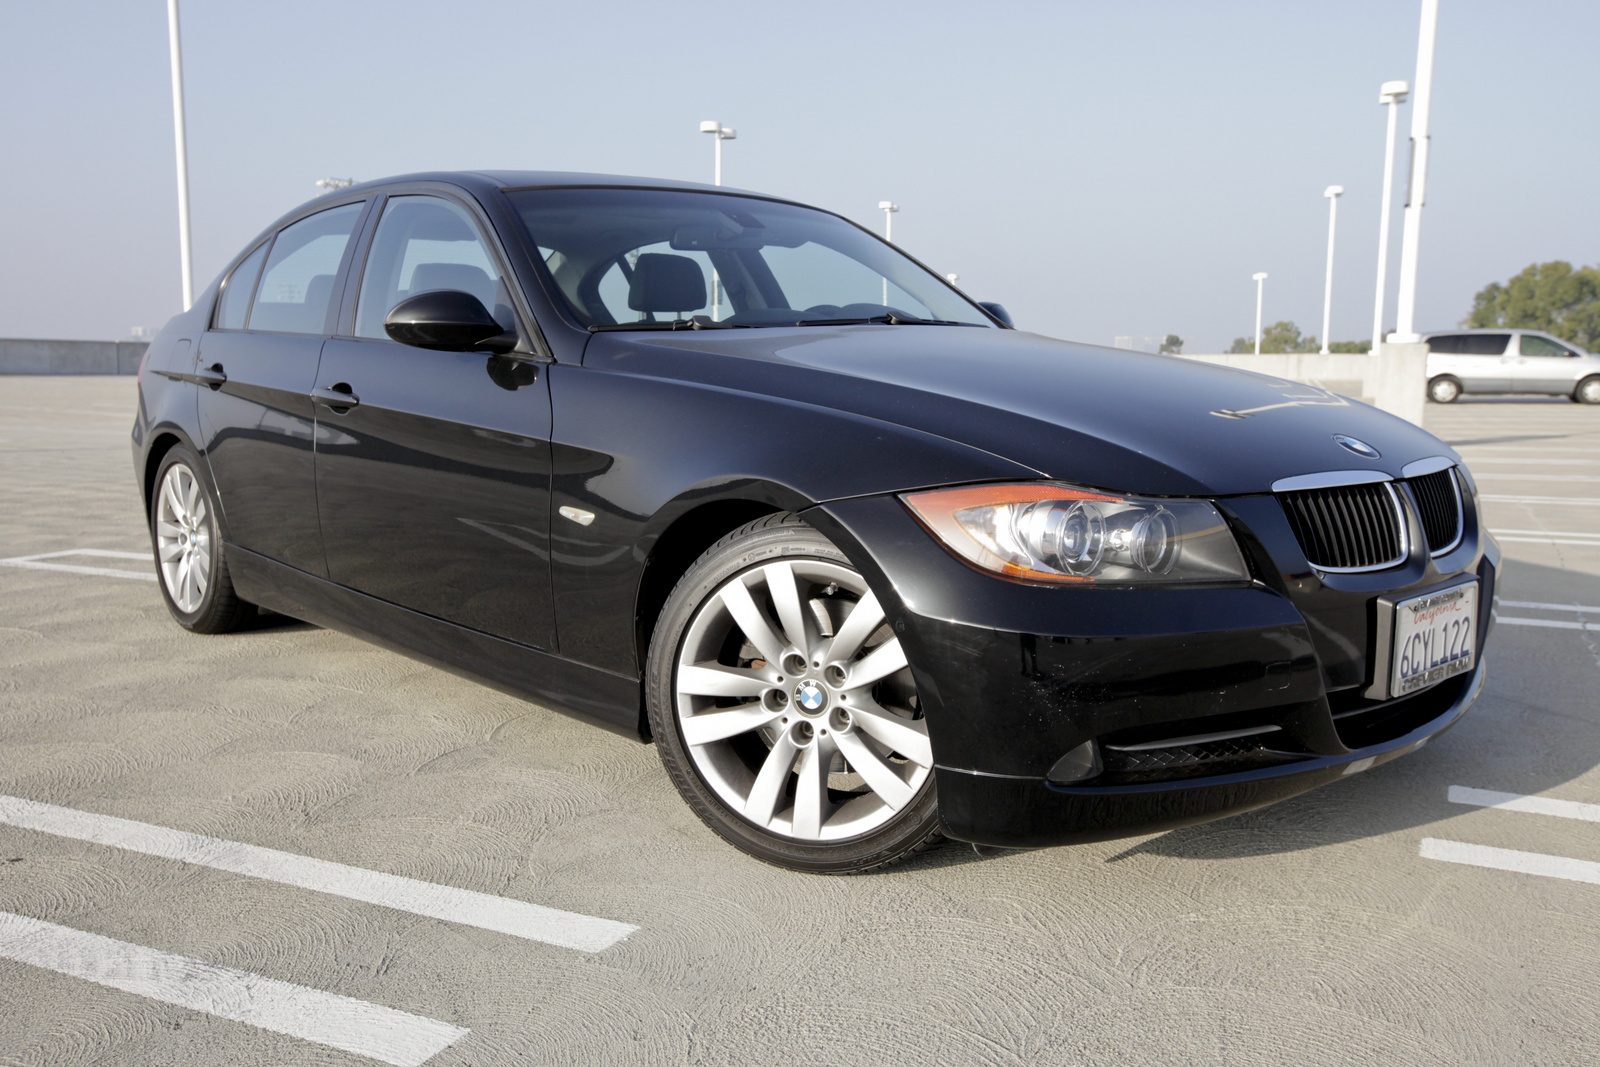 BMW 3 series 328xi 2008 photo - 4